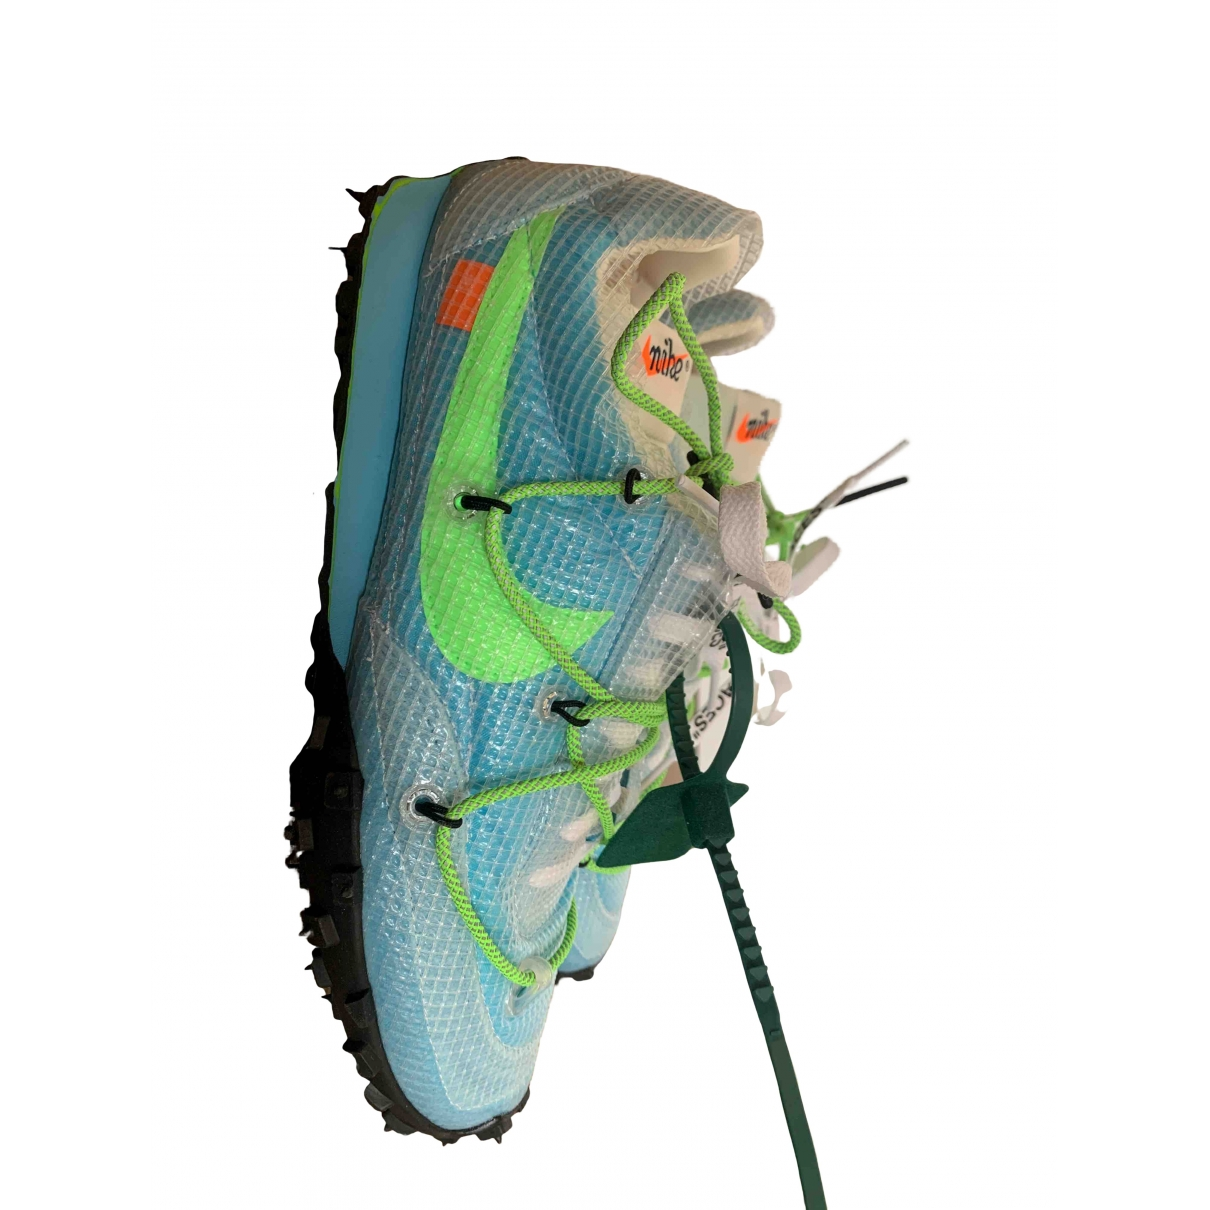 Nike X Off-white Waffle Racer Turquoise Cloth Trainers for Men 42 EU